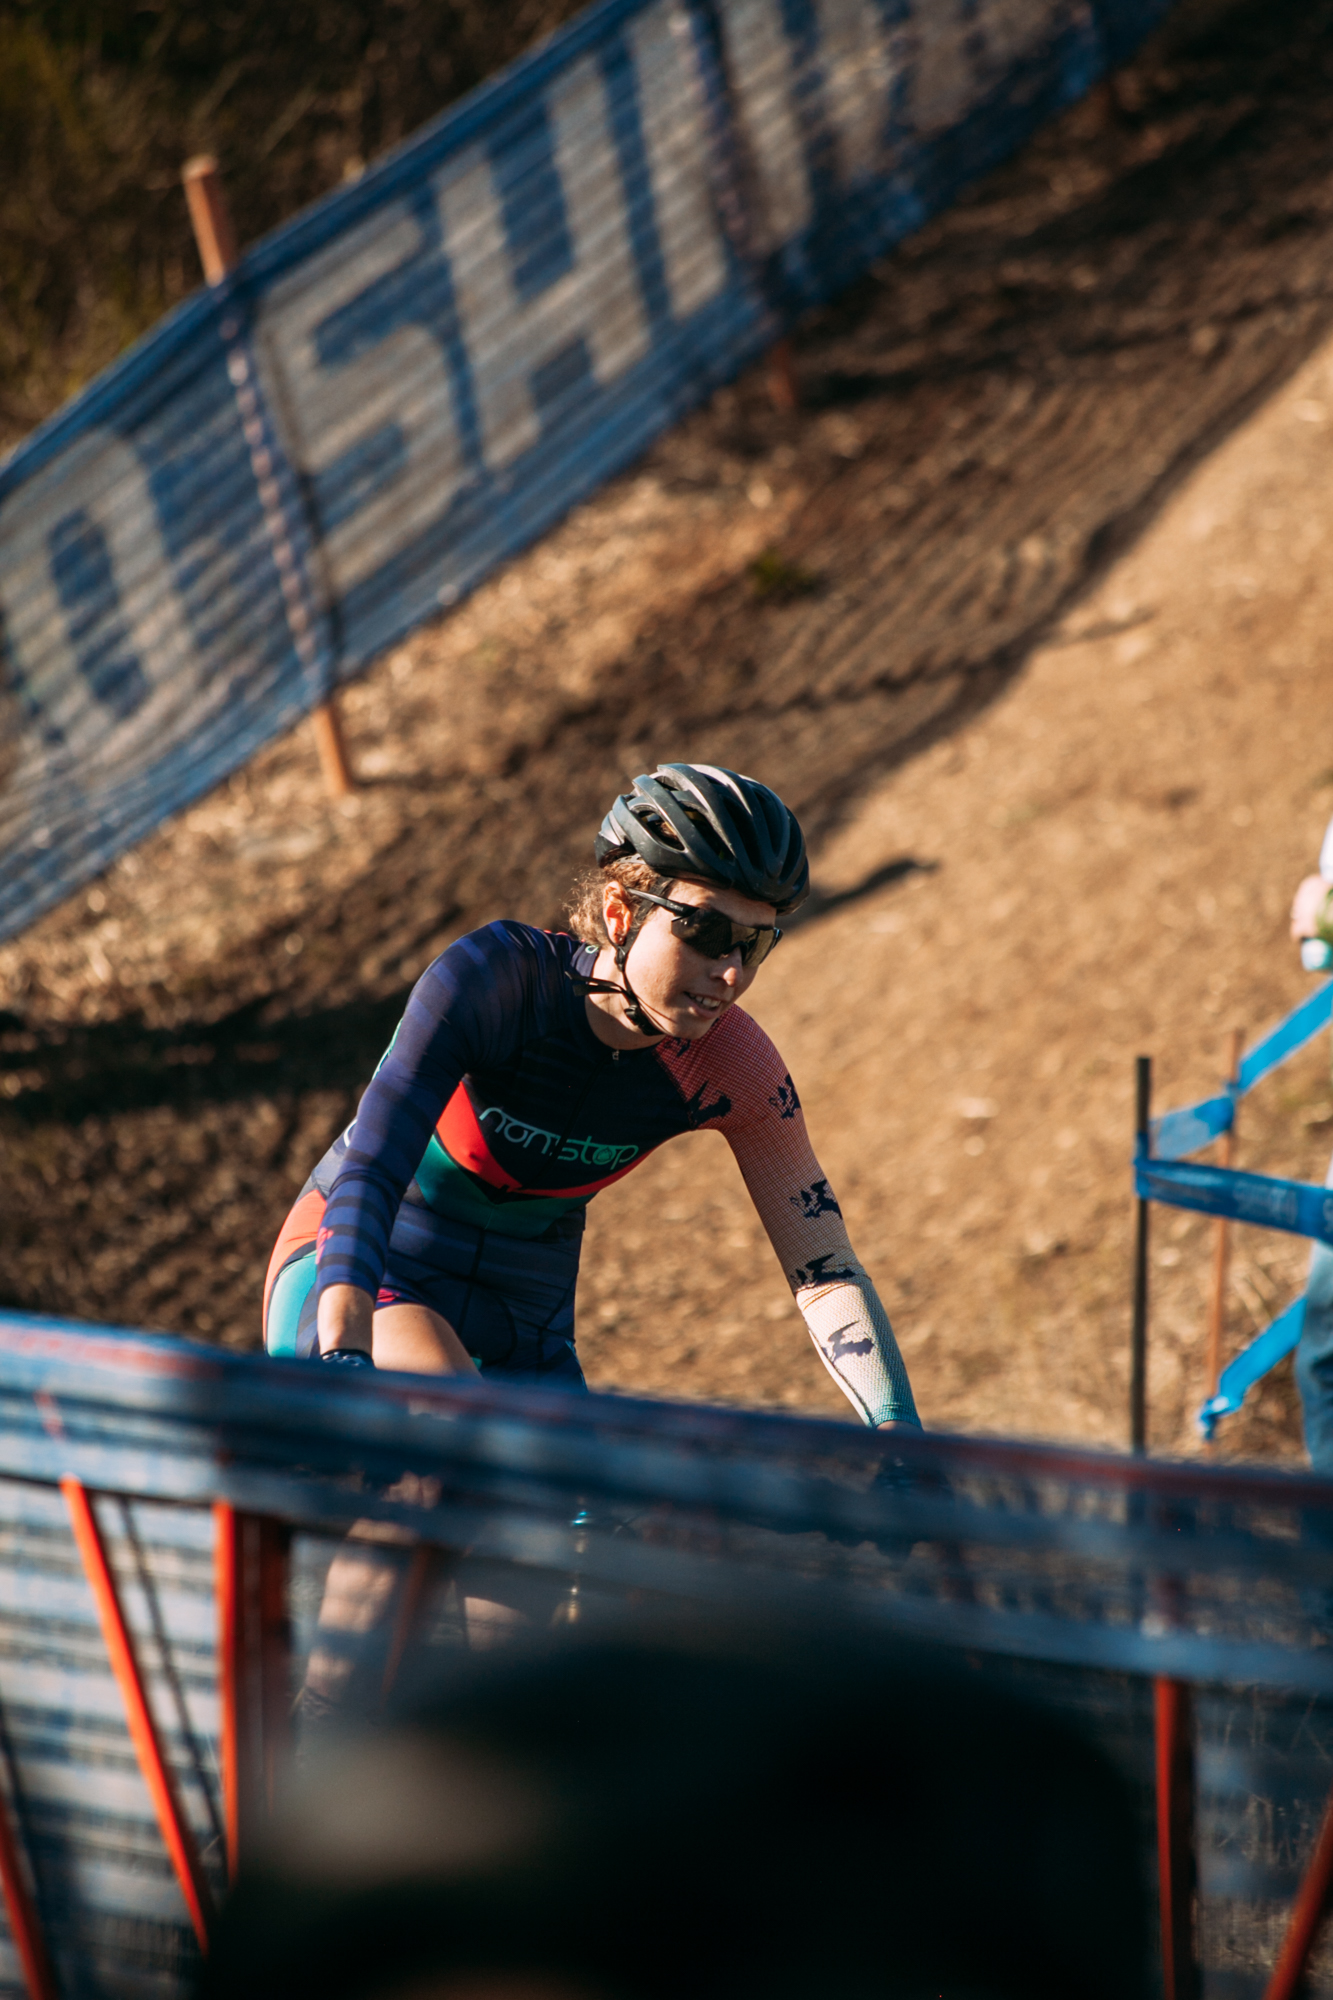 Cyclocross18_CCCX_BartonPark-mettlecycling16.jpg